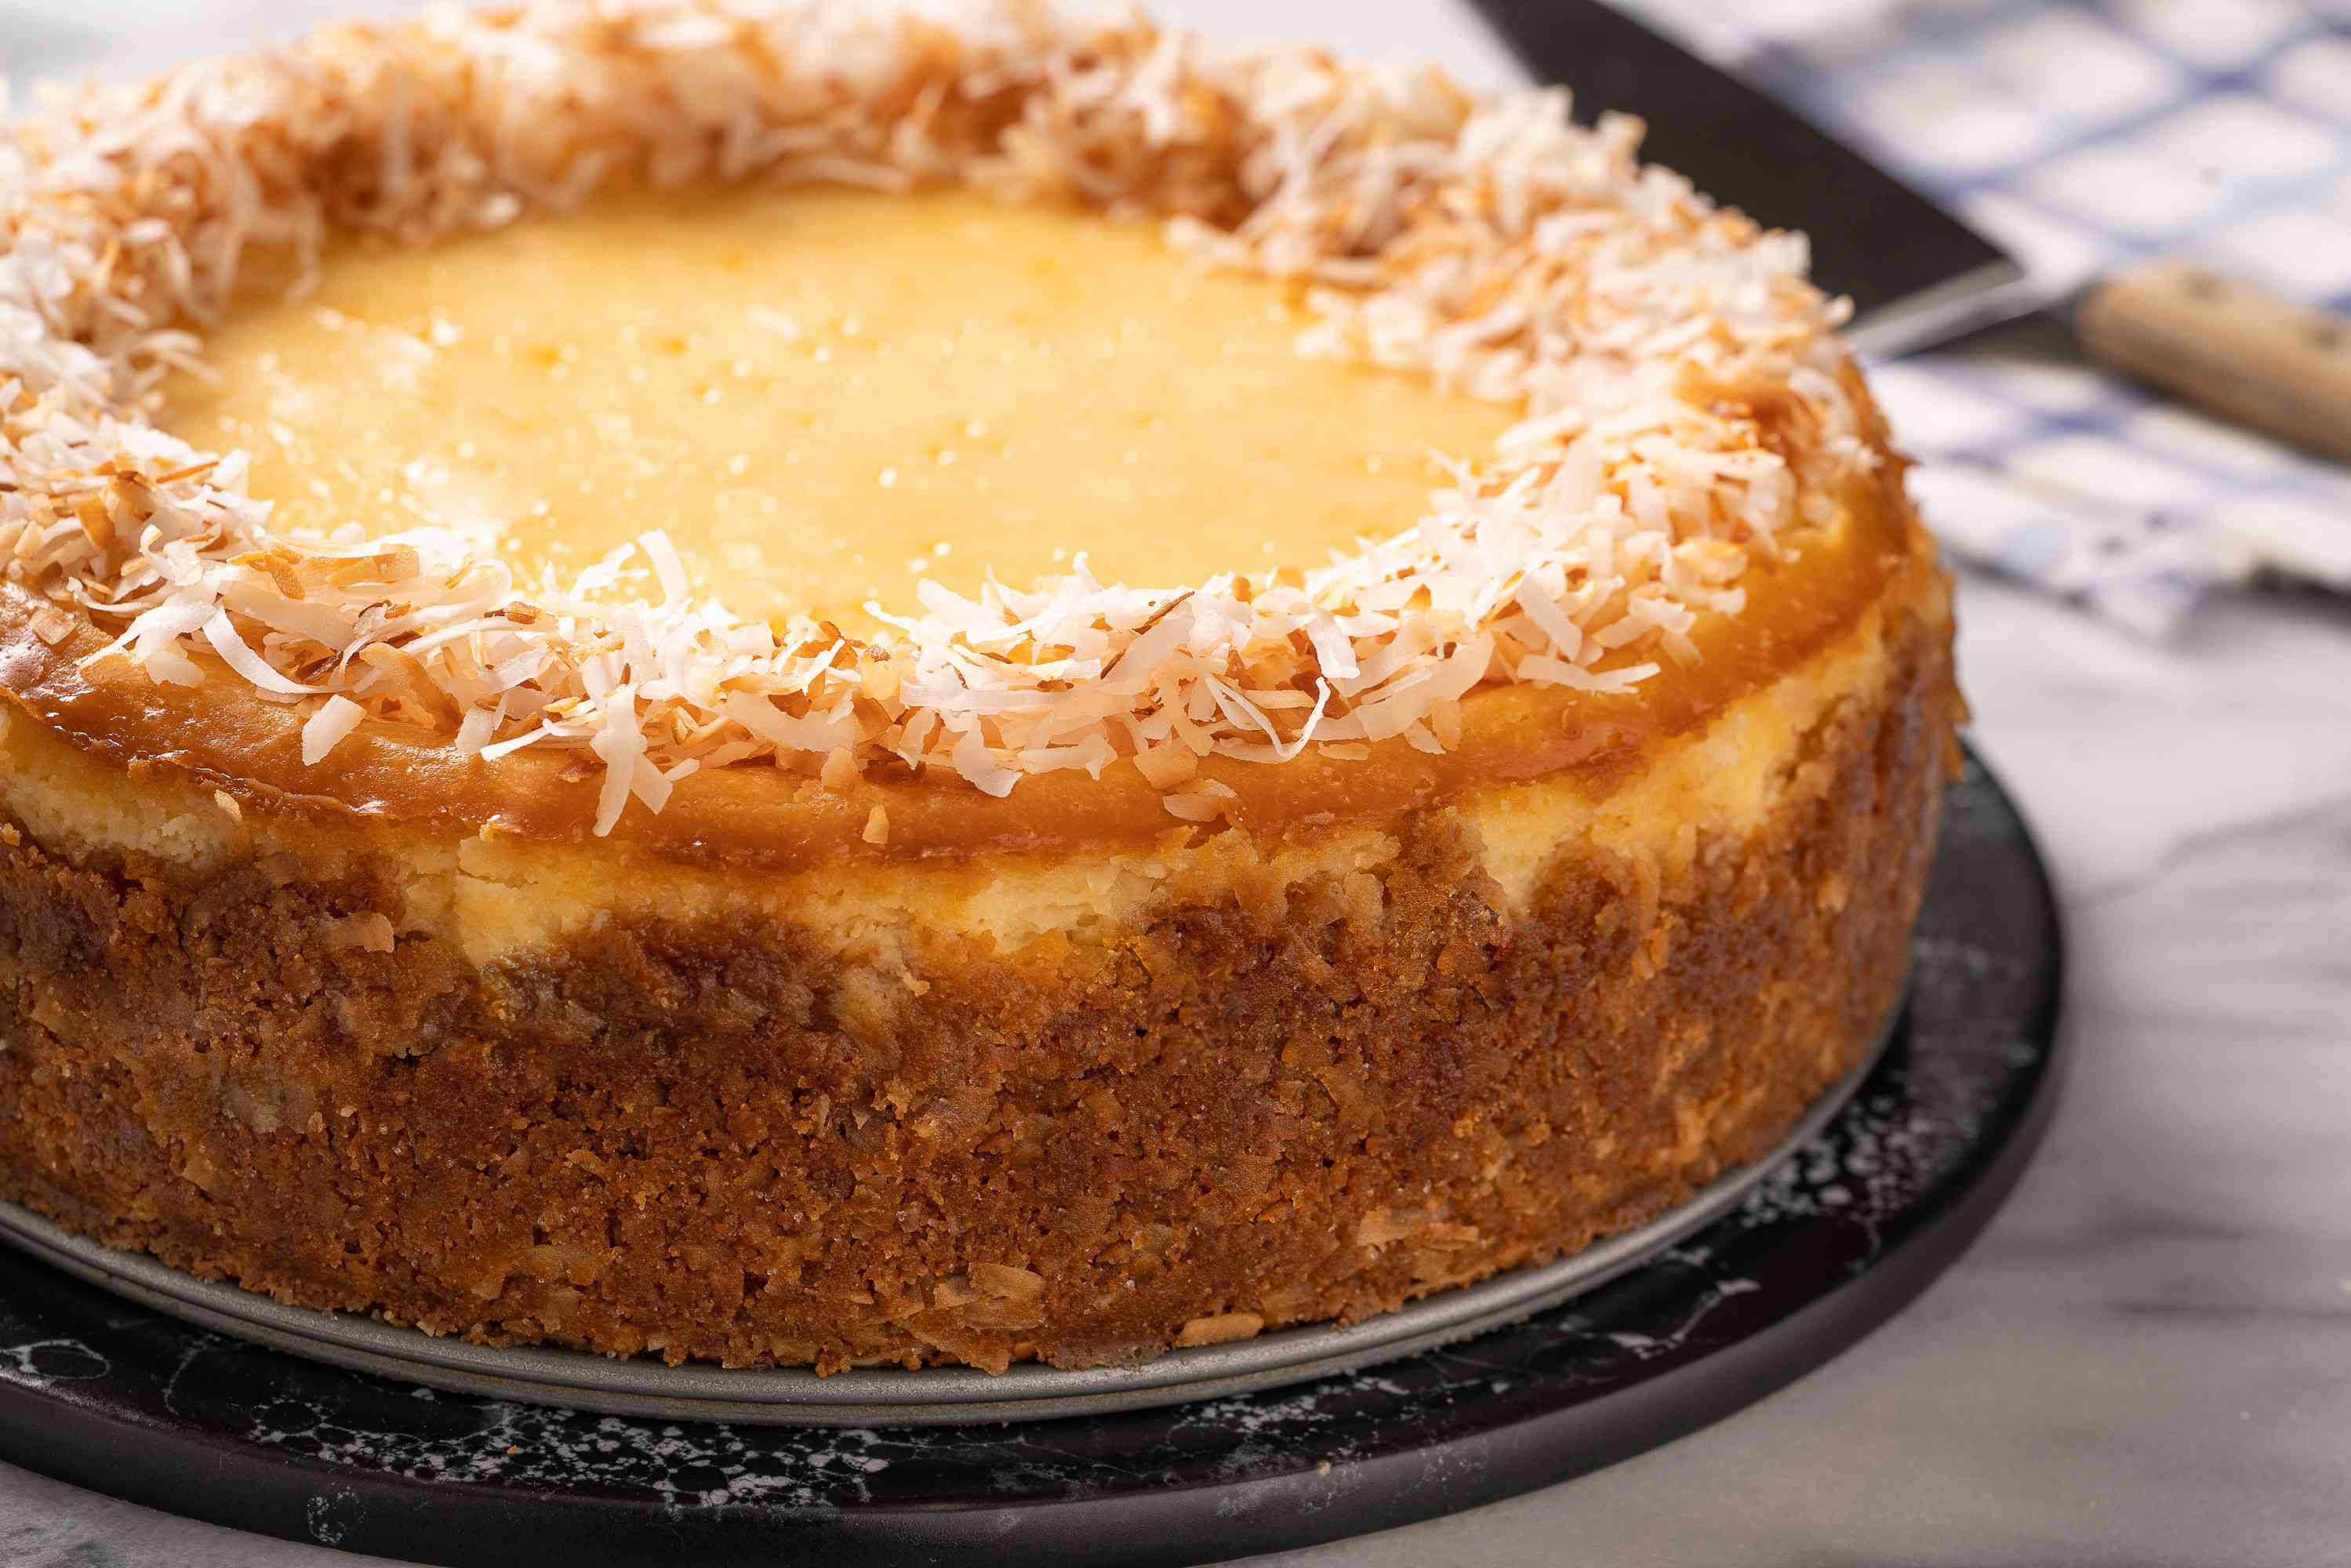 Coconut cheesecake on a serving plate